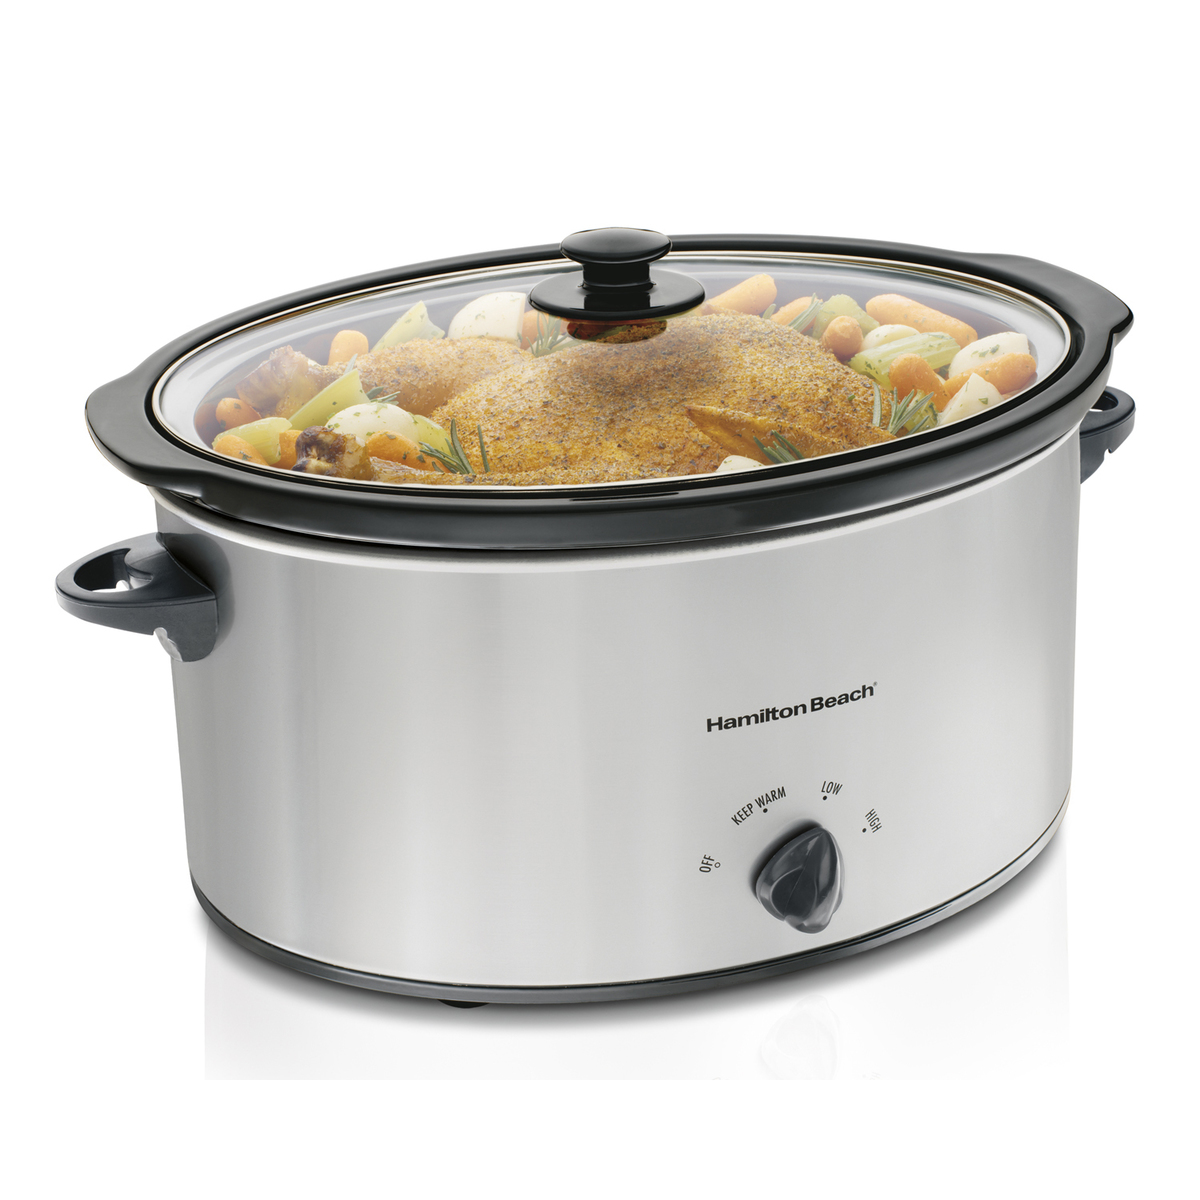 6 Quart Slow Cooker (R1505)